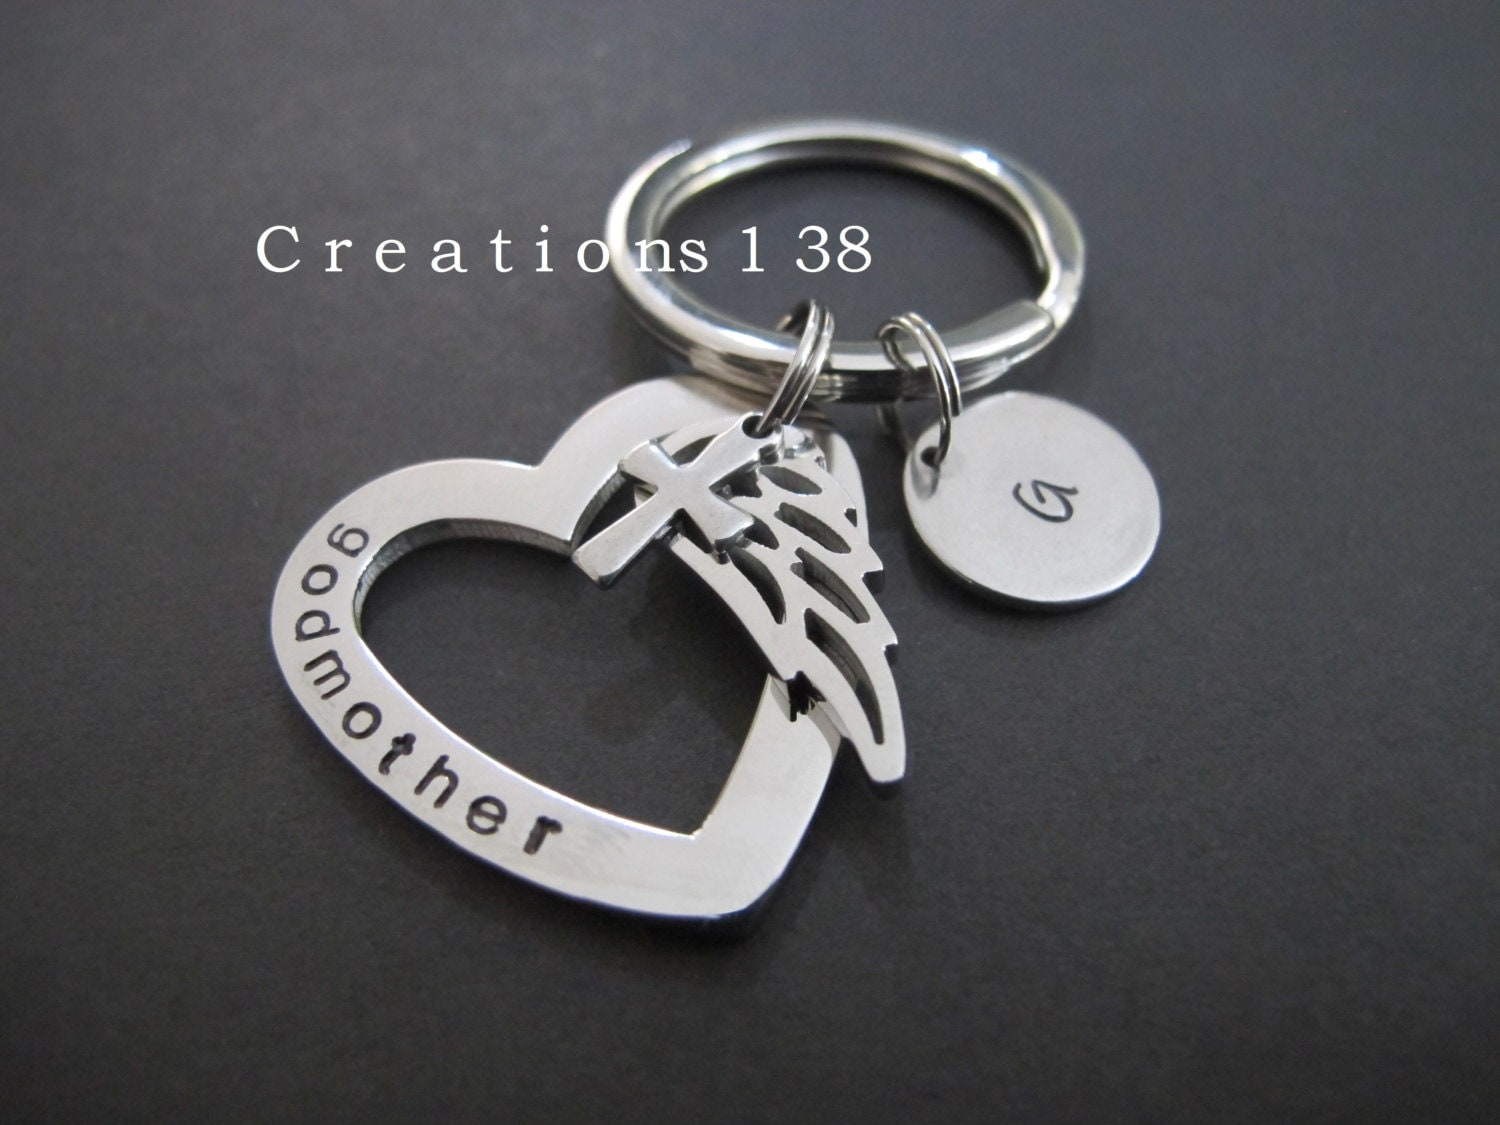 Godmother Gift Godparent Gift Personalized Gift For: Godmother Gift-Personalized Baptism Keychain-Godparent